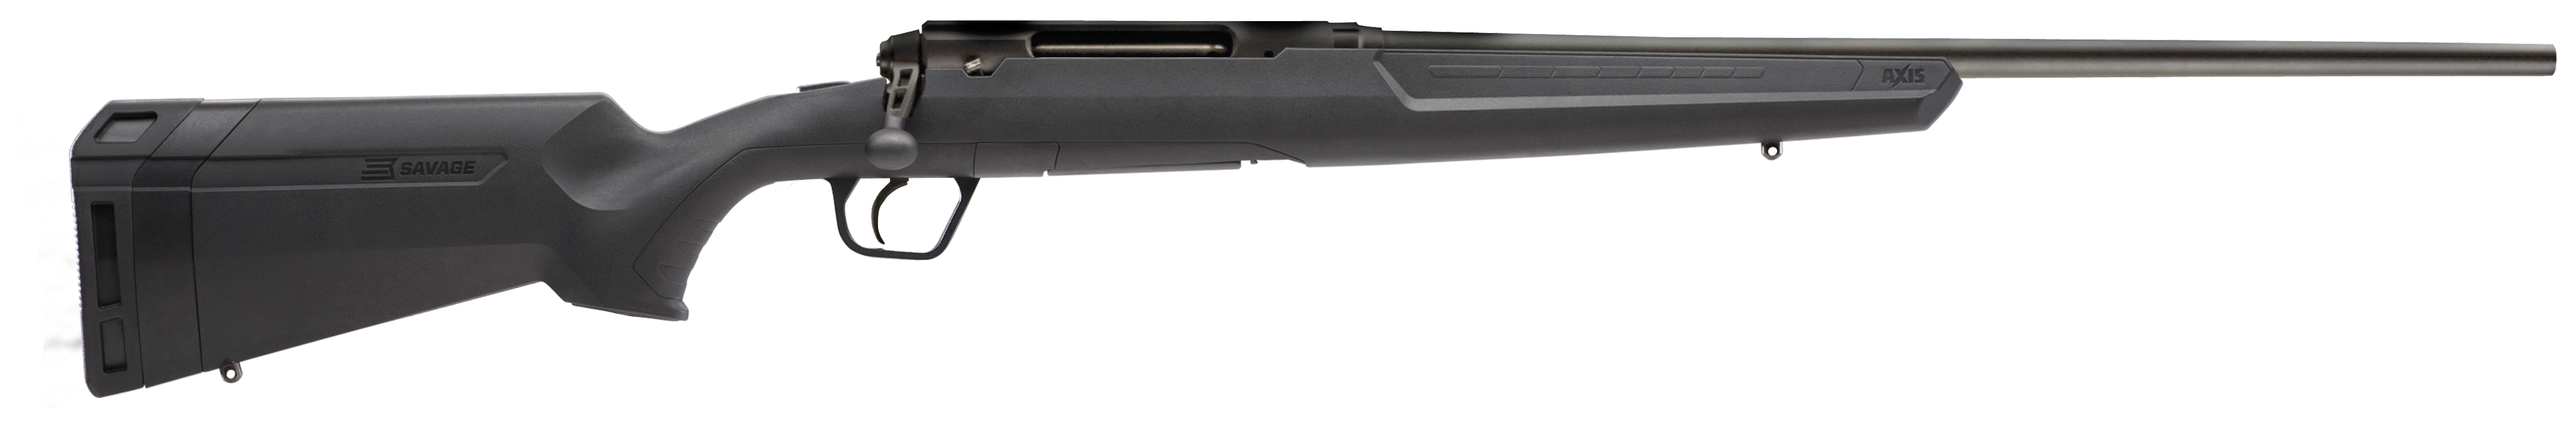 Savage Arms Axis 308 Win